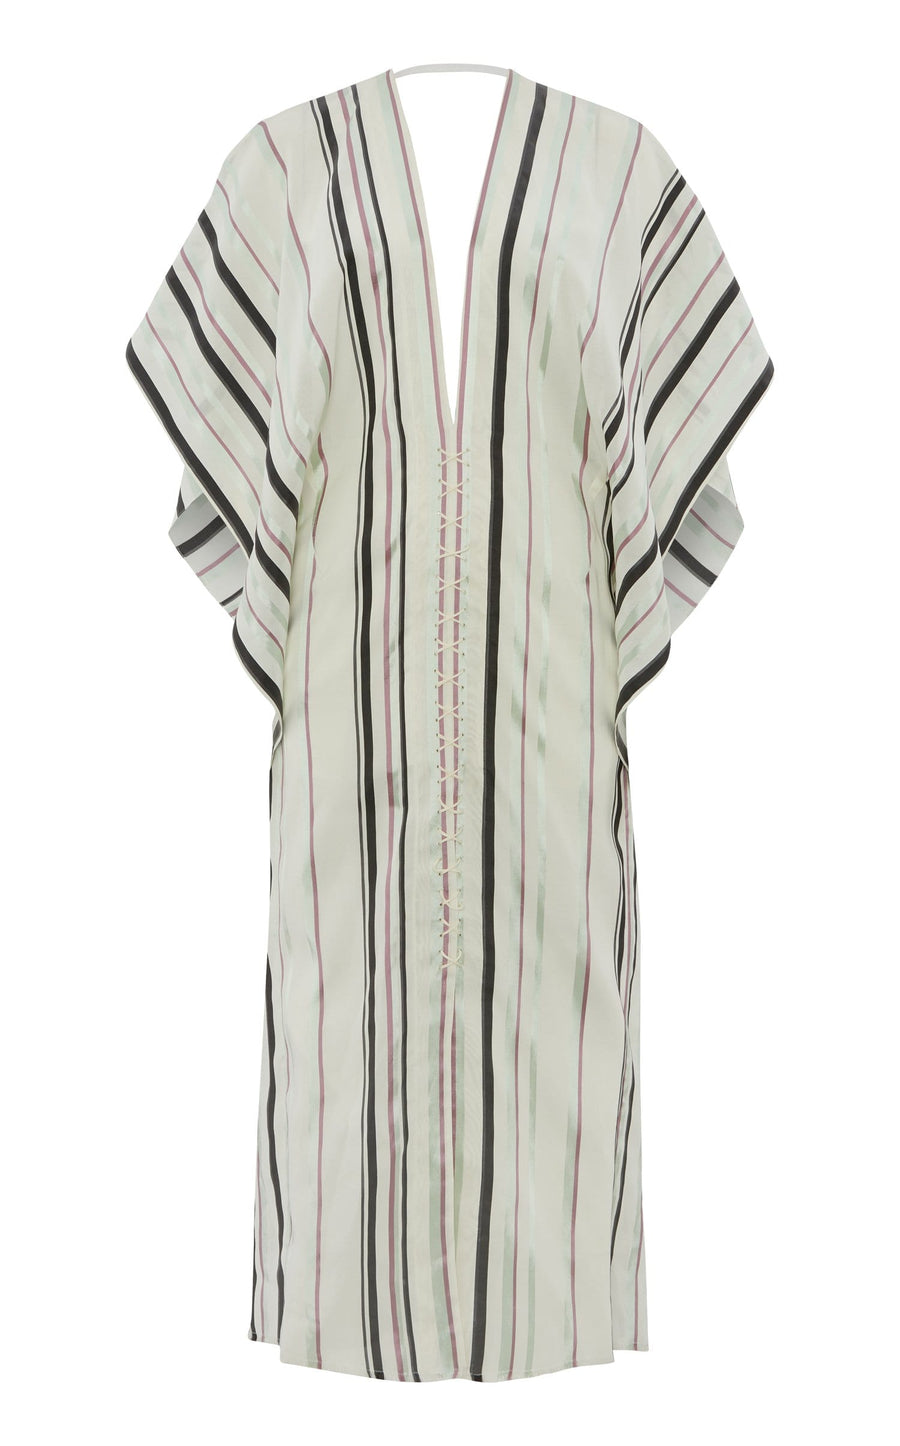 Adamson Dress In Pastel Multi/White from Roland Mouret